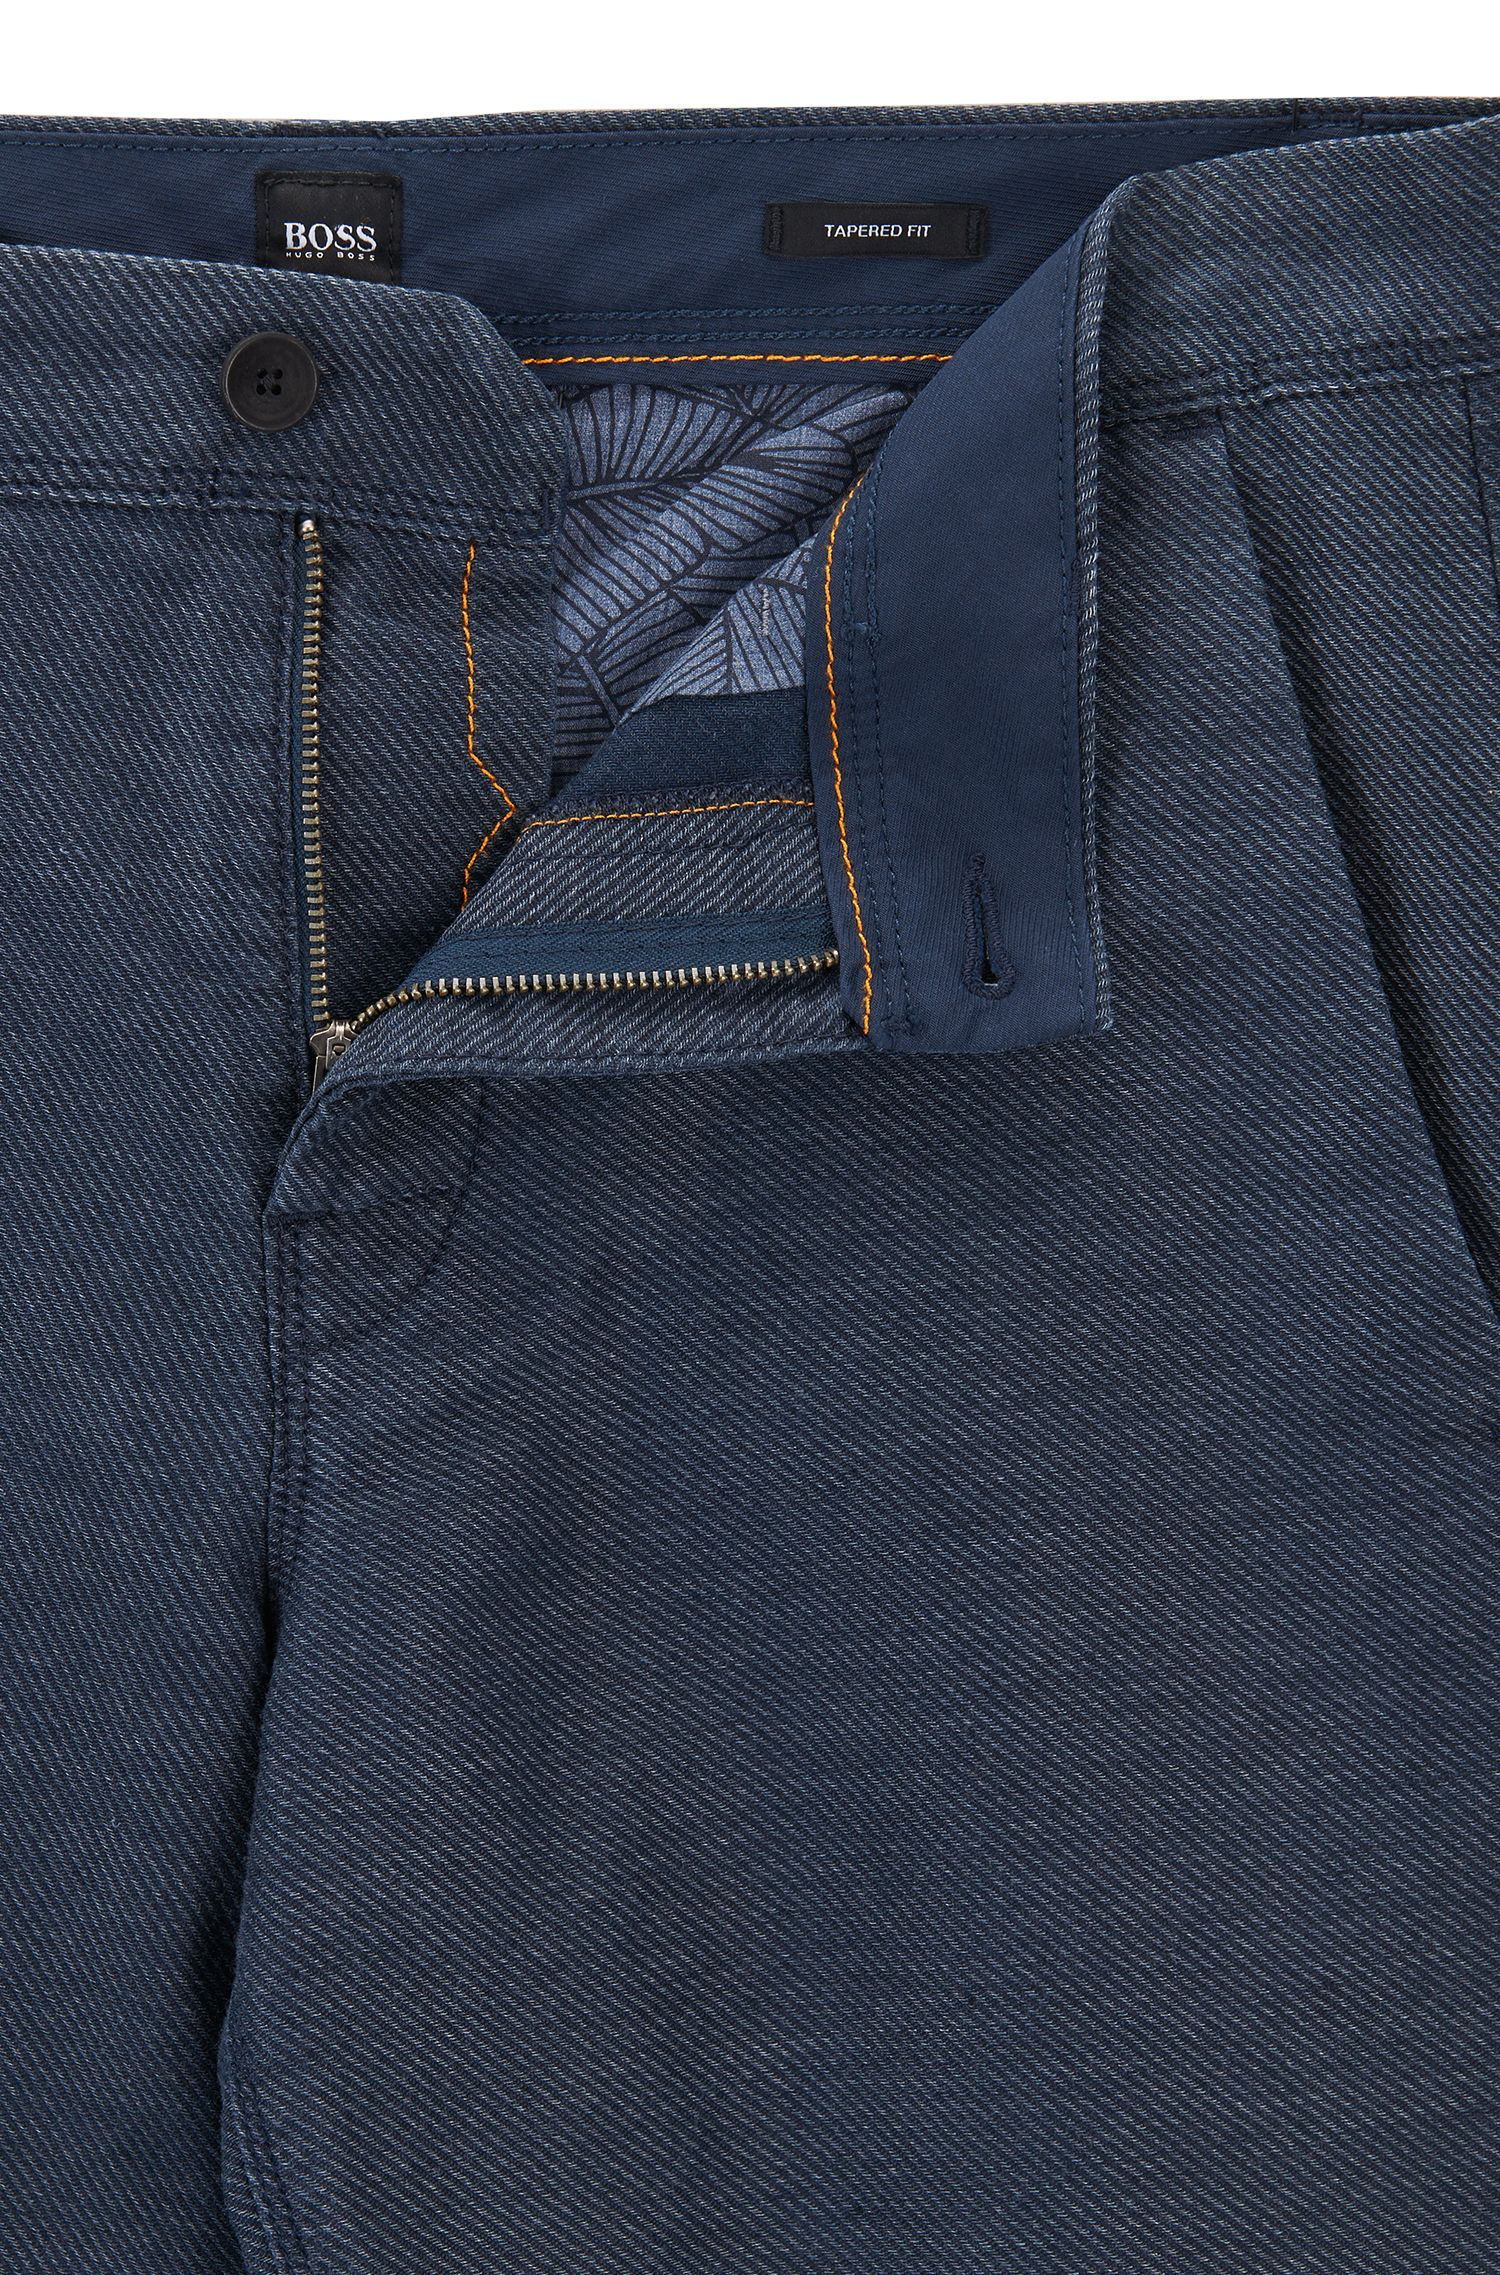 Tapered-fit trousers in midweight twill